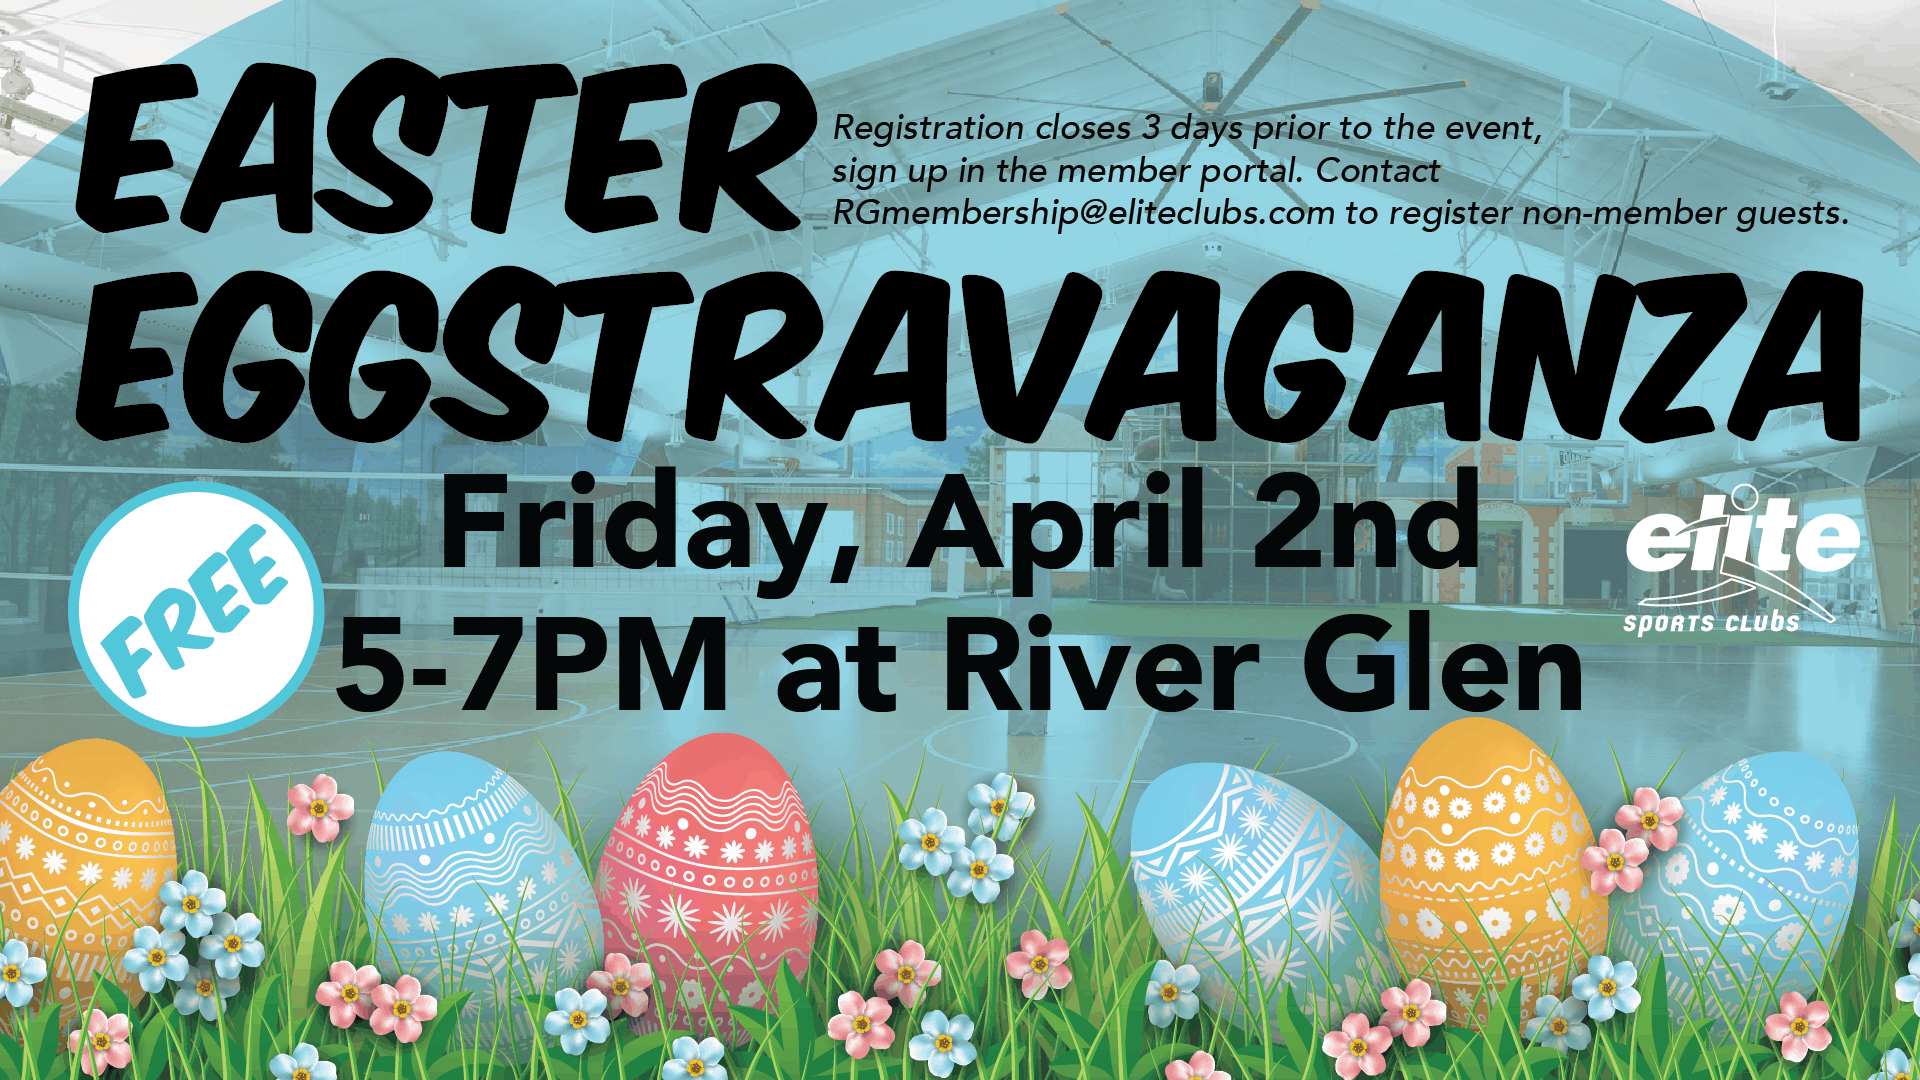 Easter Eggtravganza - Elite River Glen - April 2021